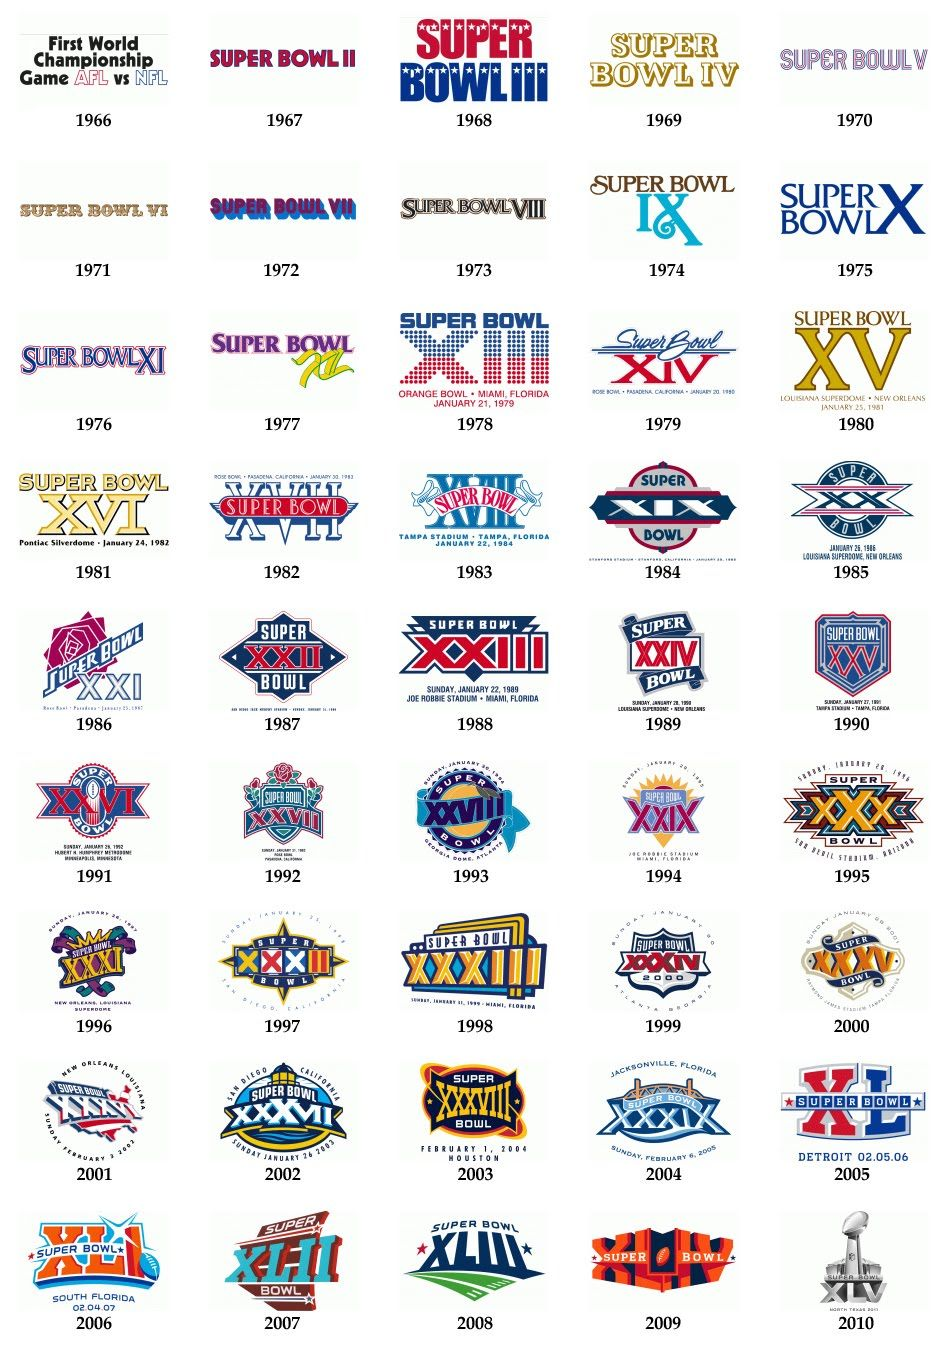 All future Super Bowl logos will have the same basic